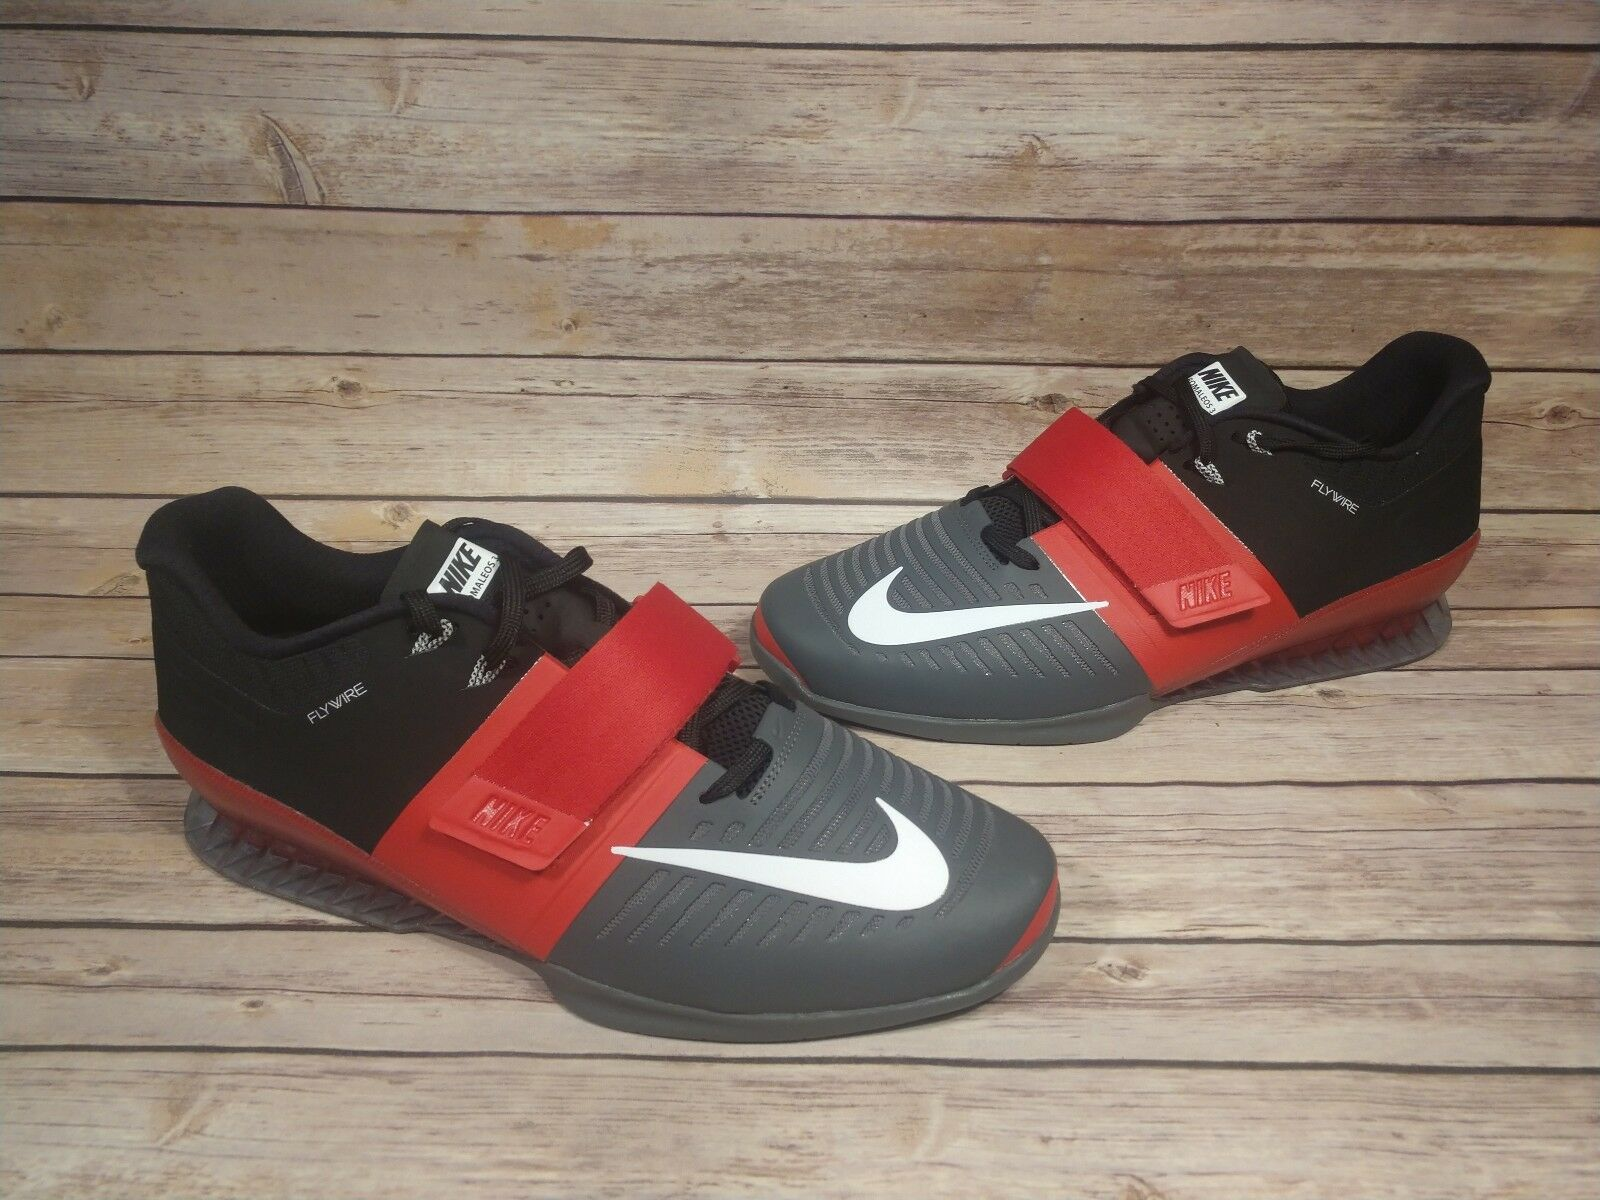 competitive price 7c161 fb5cc Mens Nike Romaleos 3 Black Black Black Red Crossfit Weightlifting Shoes  852933 600 Size 15 d601e2